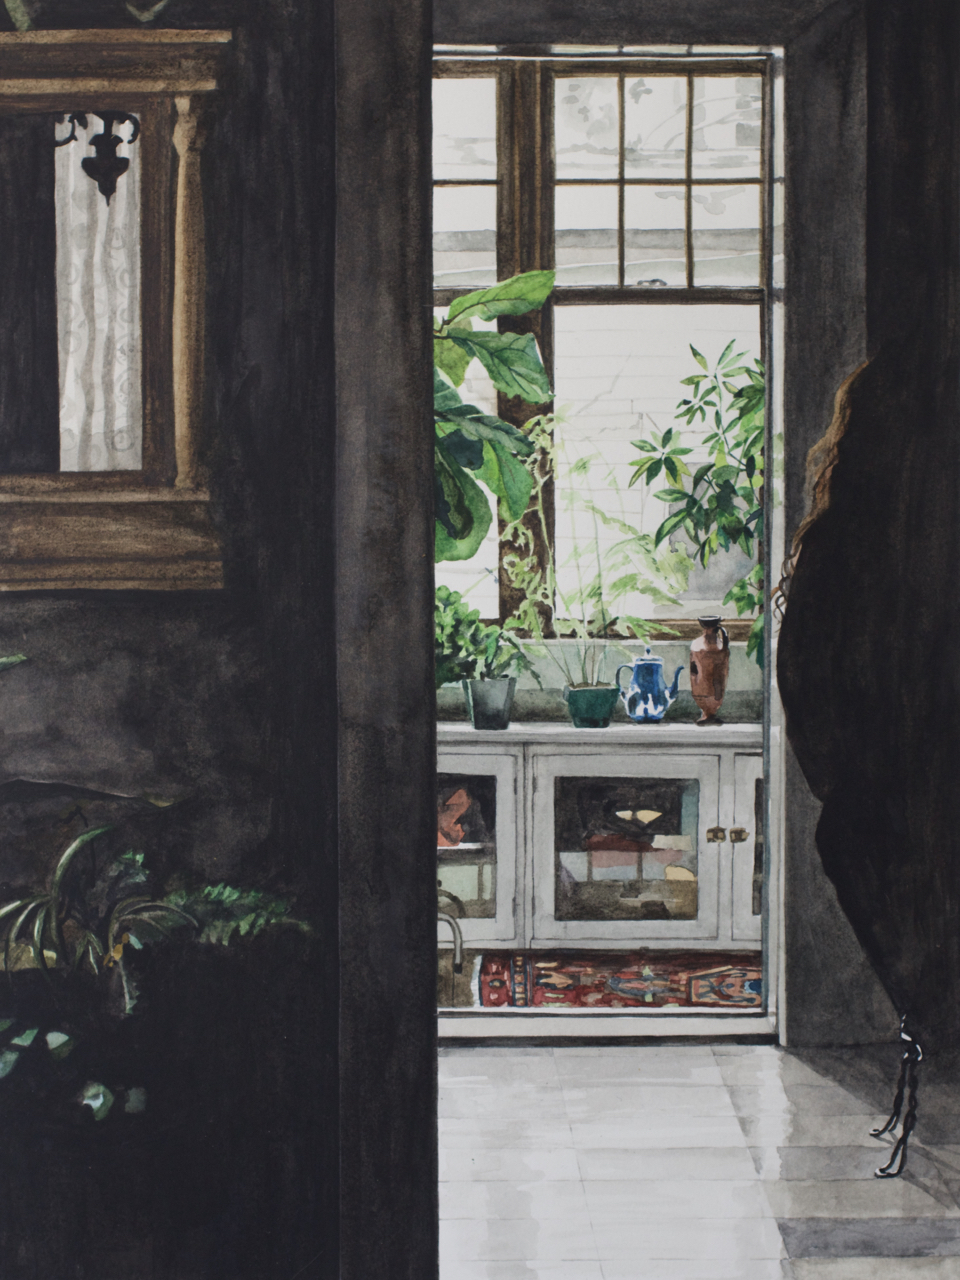 Heather Goodchild, Early evening kitchen, 2016, watercolor on paper, 12 x 9 inches.